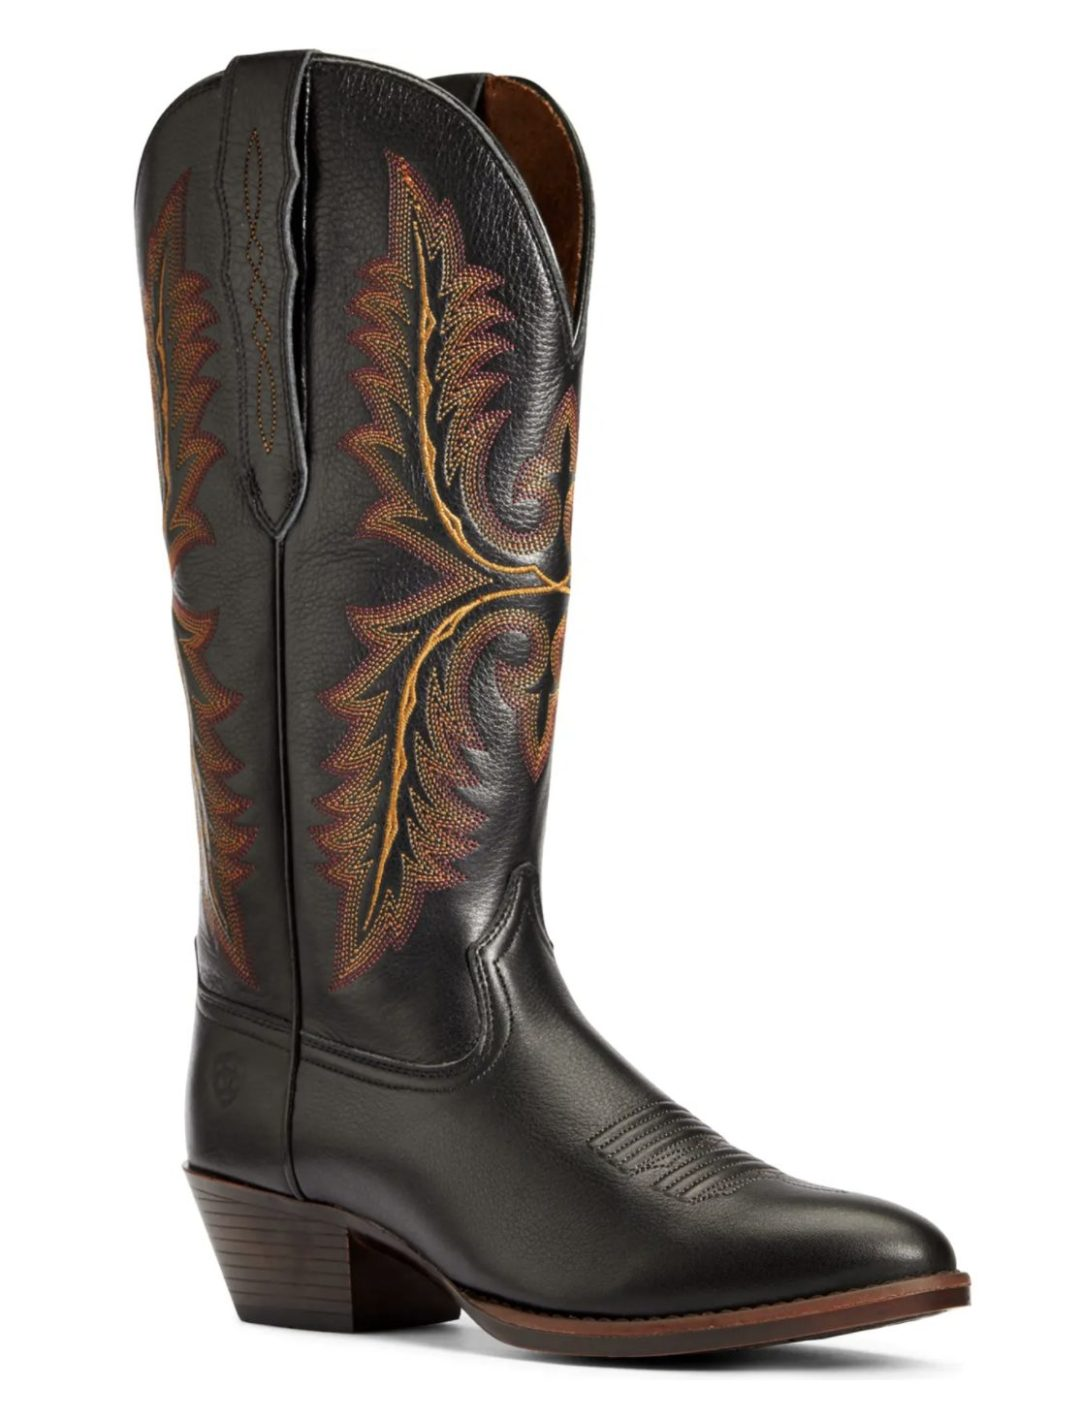 Heritage black cowboy Western boots for country music festival